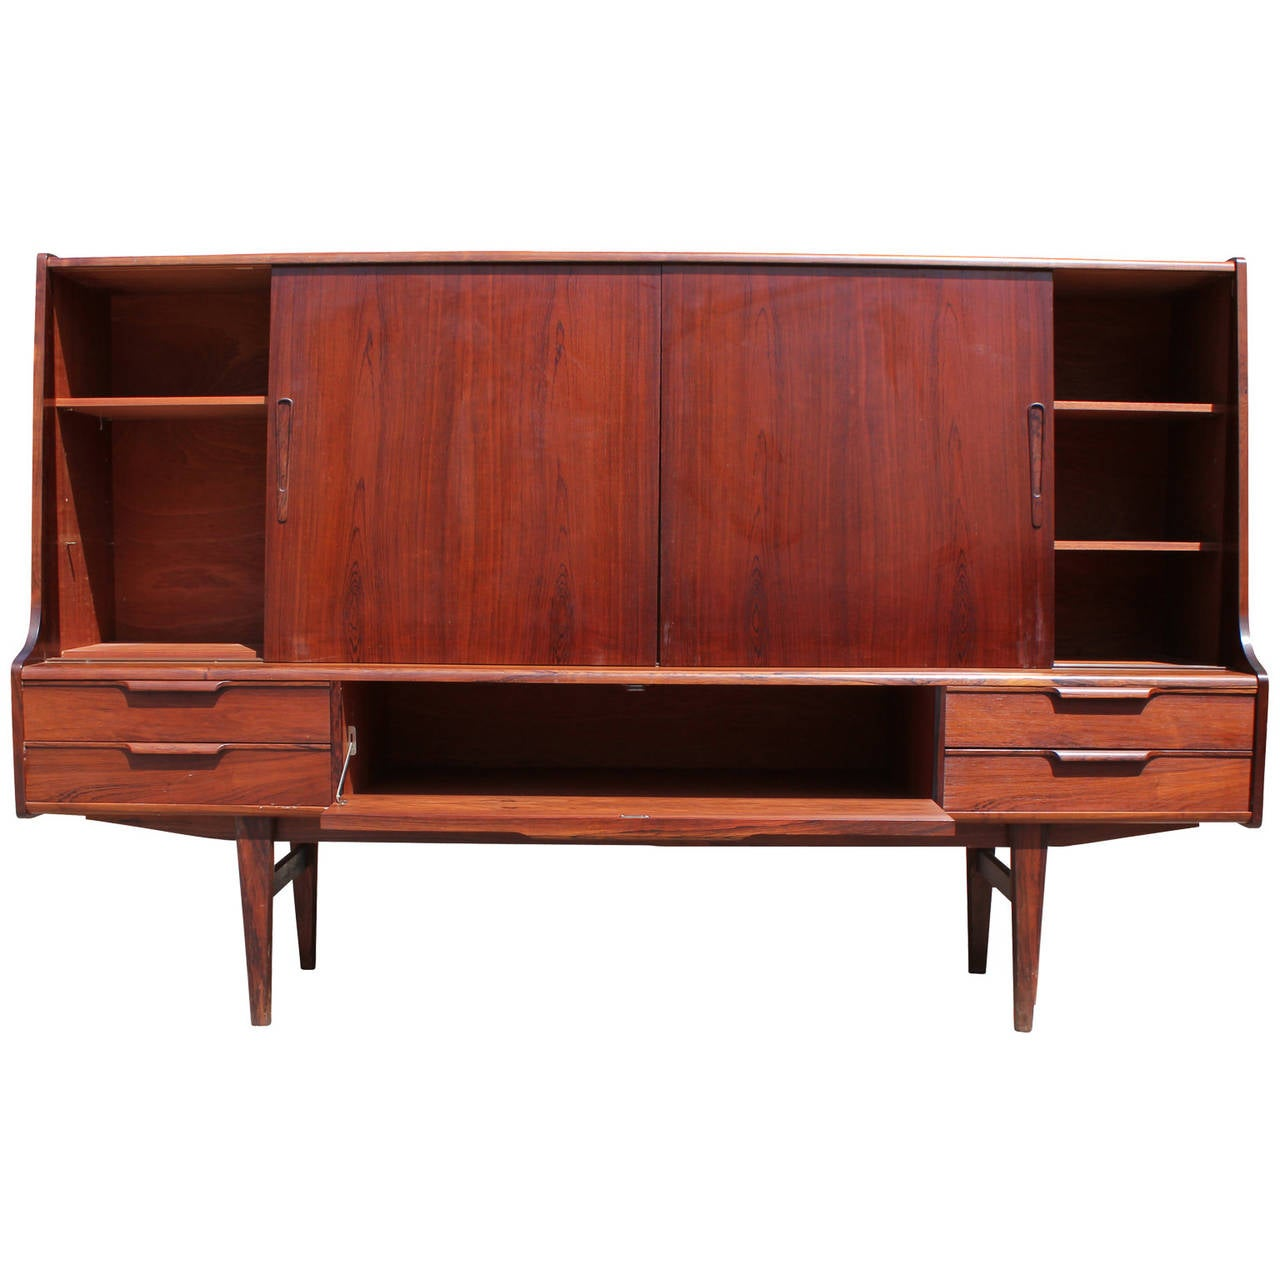 Incredible Mid Century Modern Tall Rosewood Danish Sideboard or Dry Bar 3 - Incredible Mid Century Modern Tall Rosewood Danish Sideboard Or